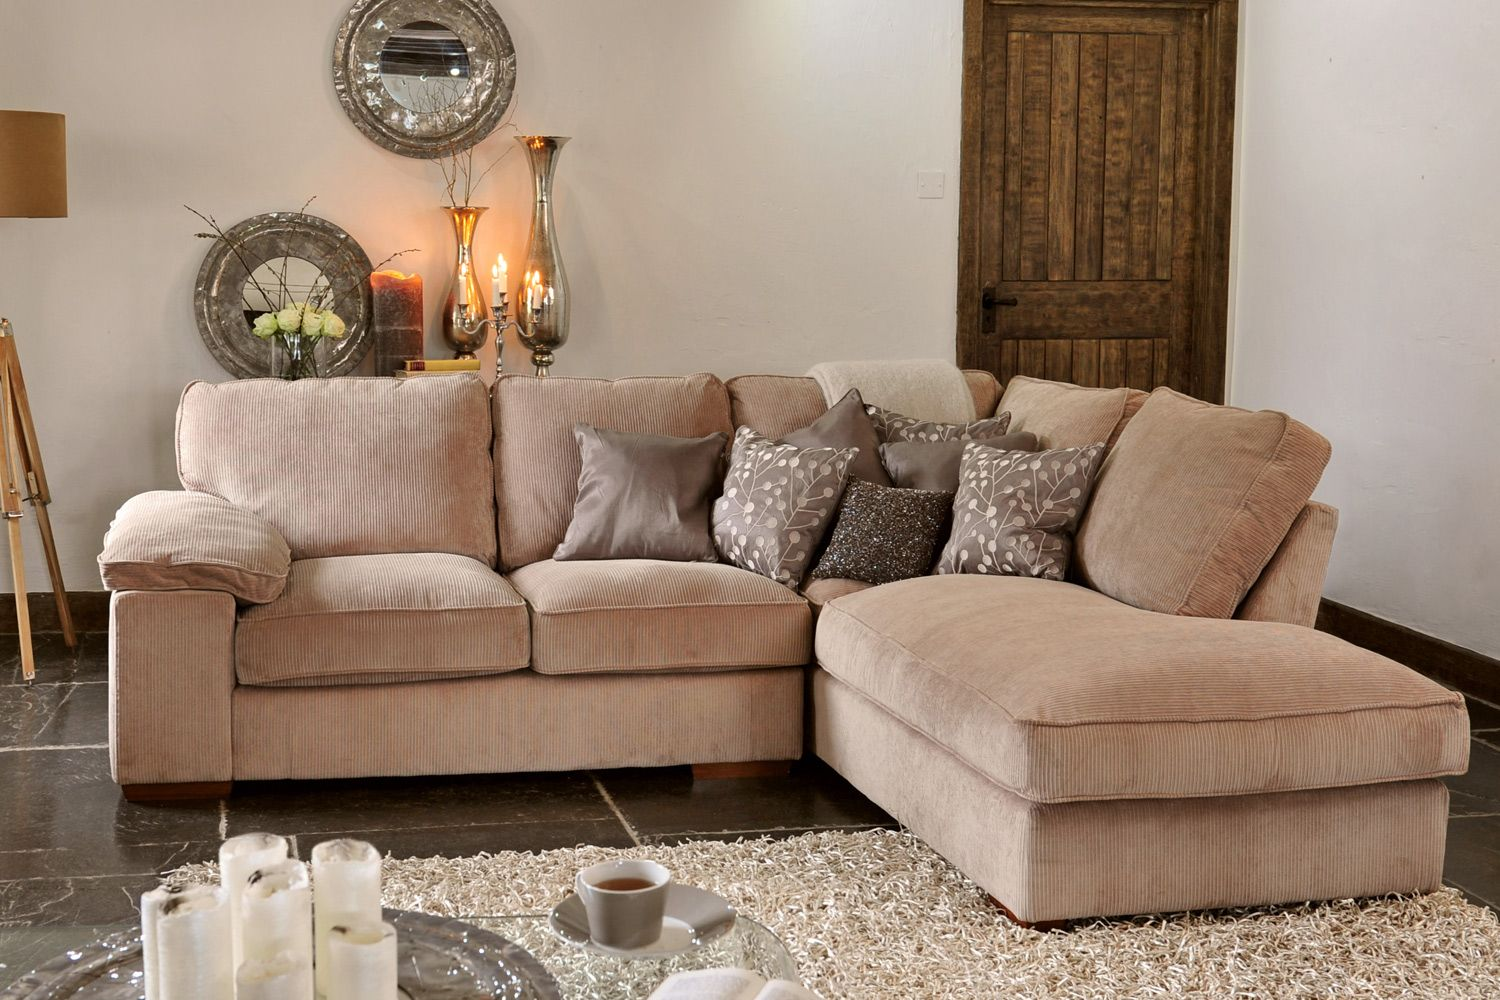 Explore Brown Living Rooms Small And More Utah Corner Sofa From Harvey Norman Ireland